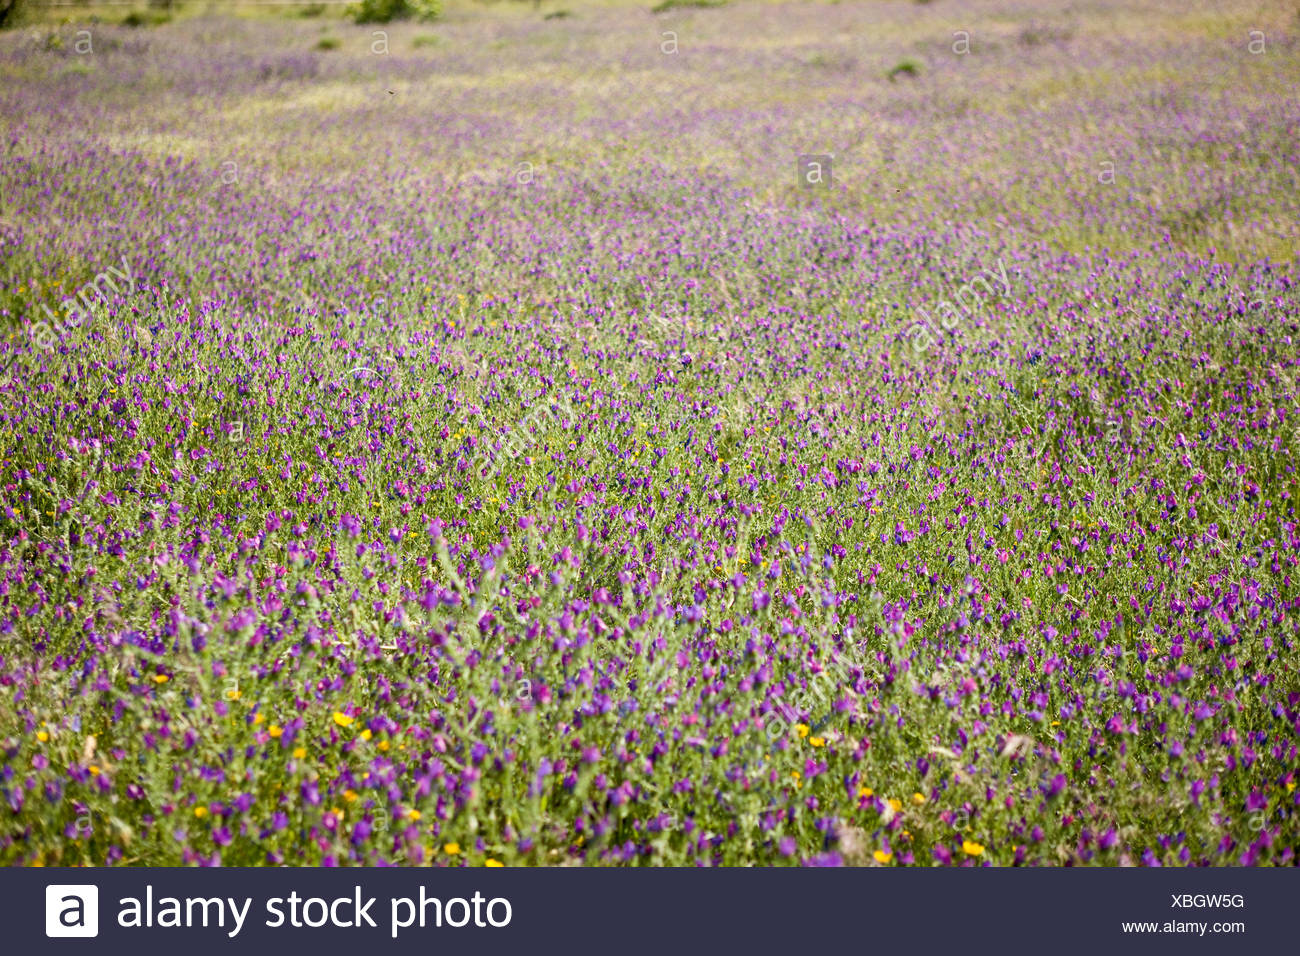 A mass of purple wildflowers in a meadow Stock Photo